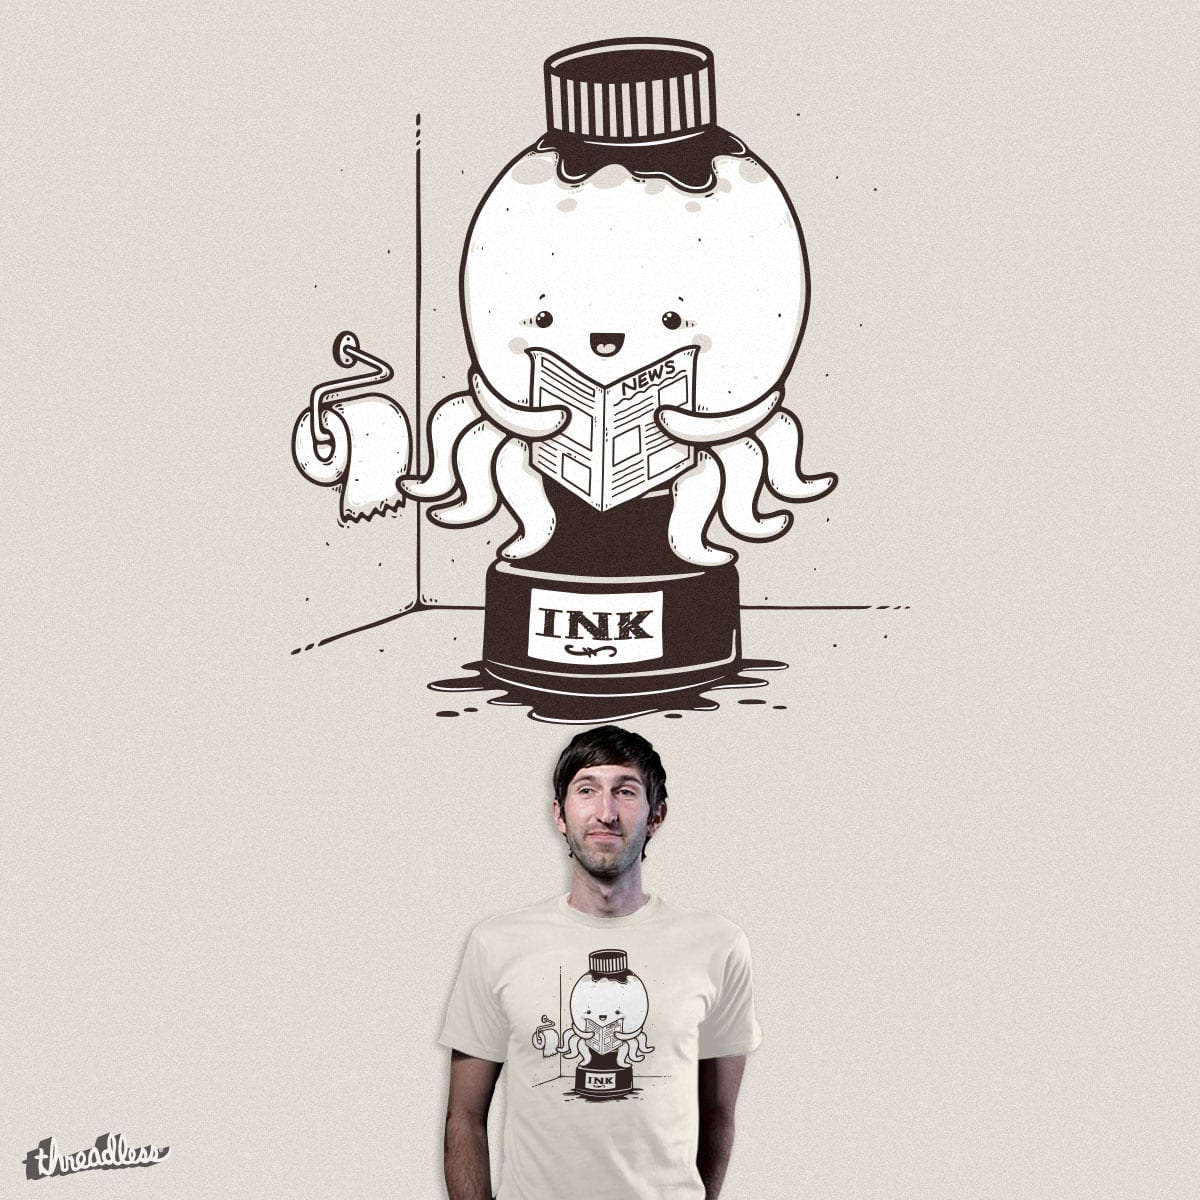 Ink refill by Robo Rat on Threadless